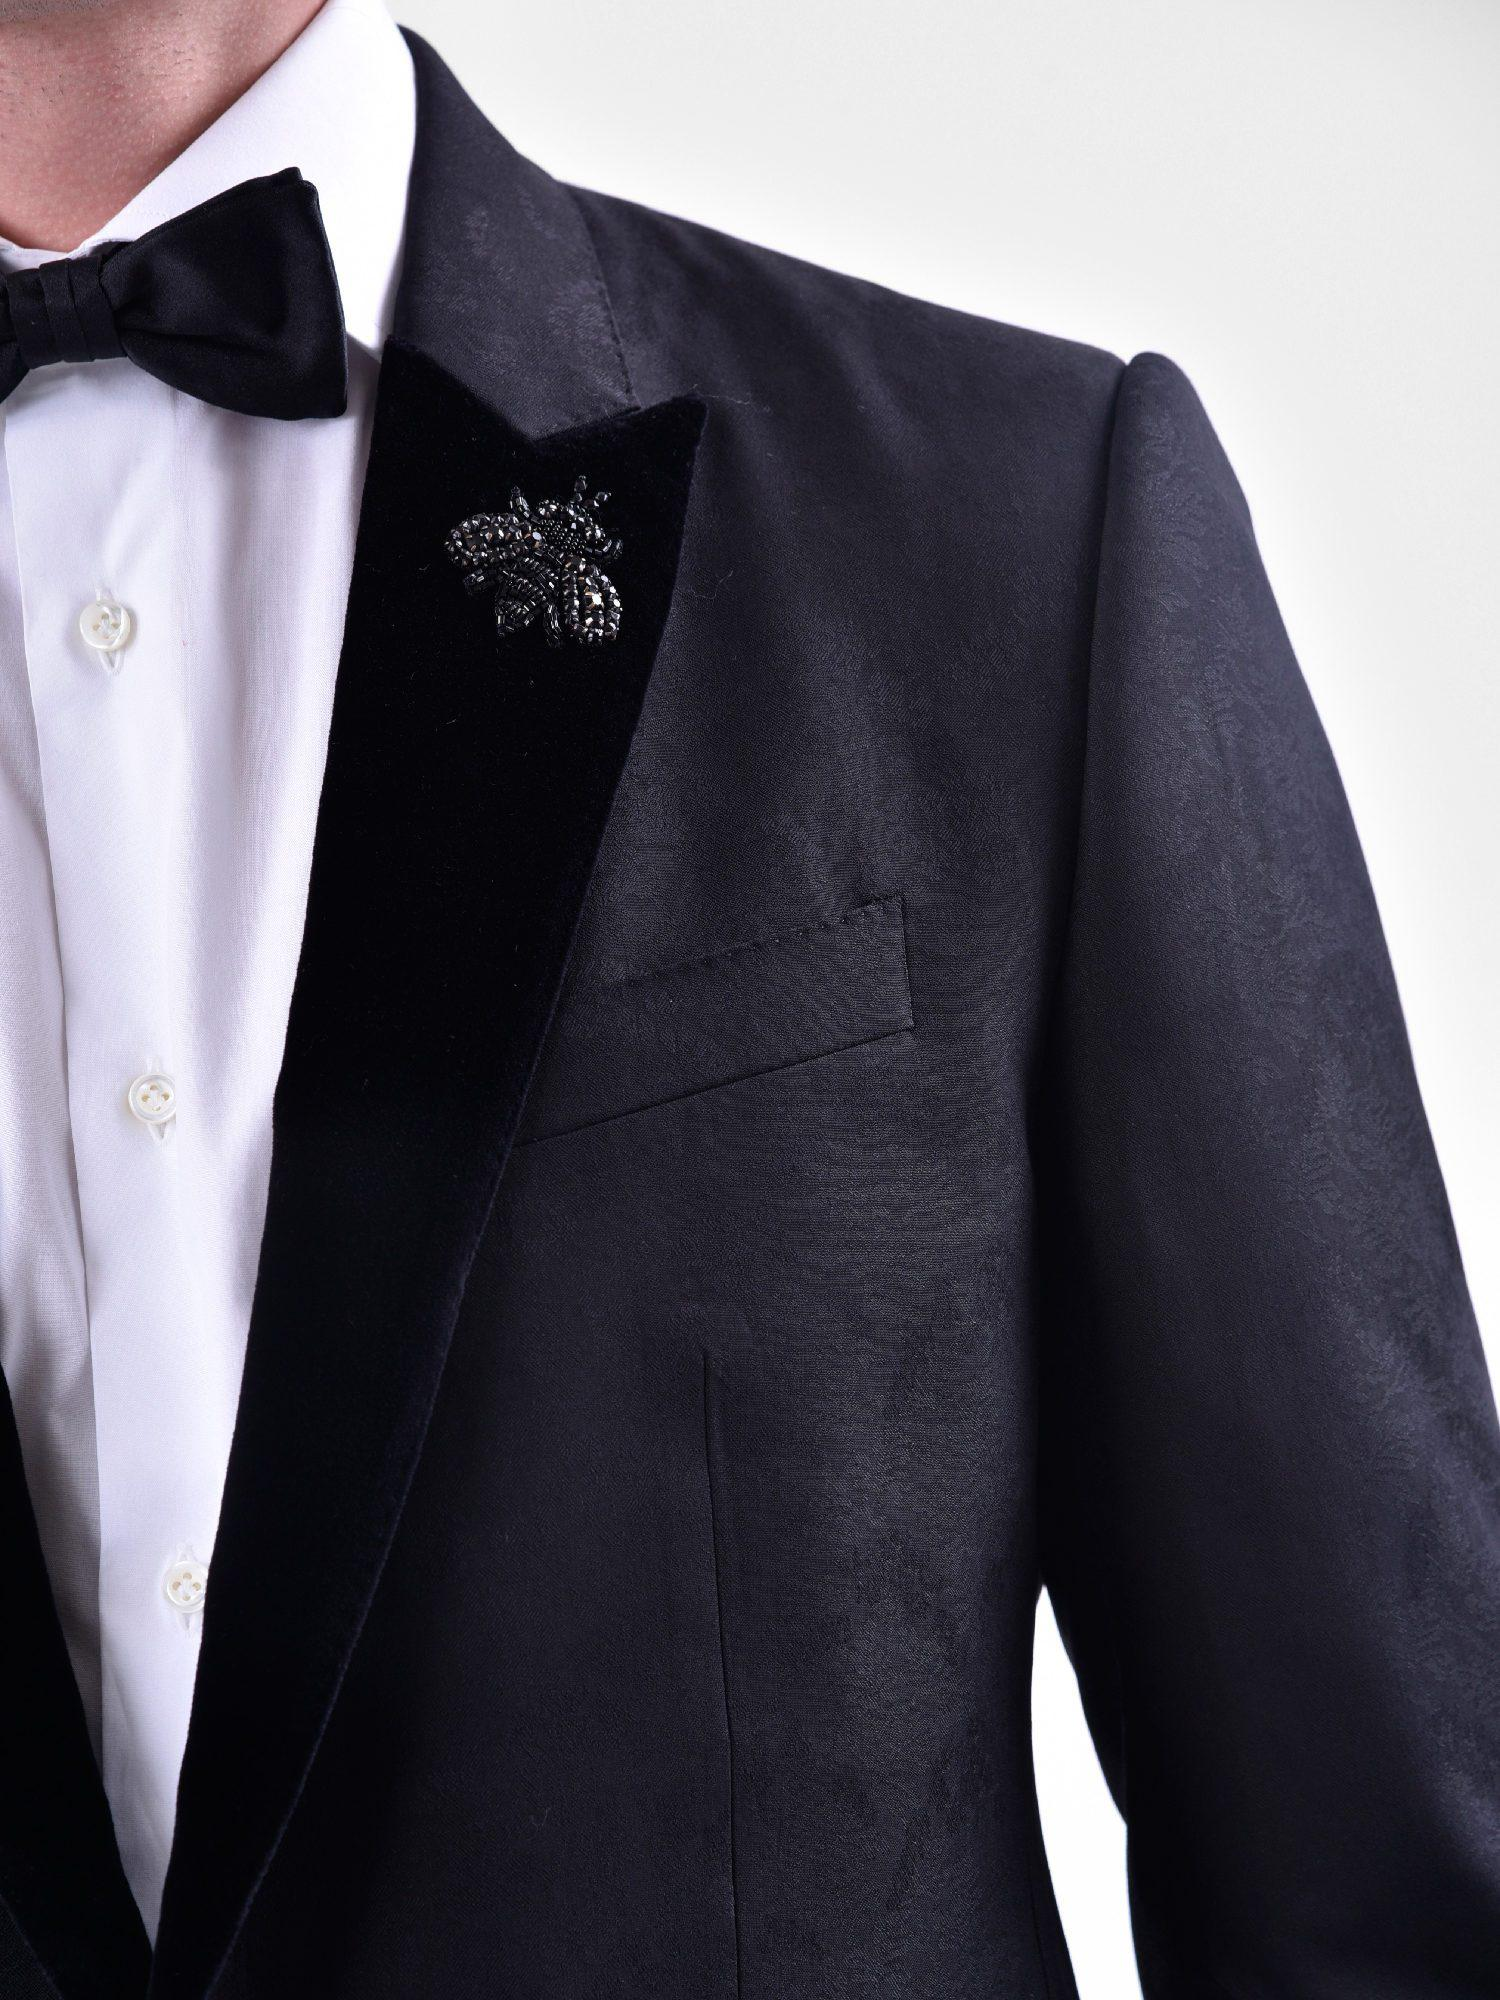 Lyst Viscose amp; Wool Blend Dolce Virgin Gabbana And Jacket Blue In wFRTUwqC